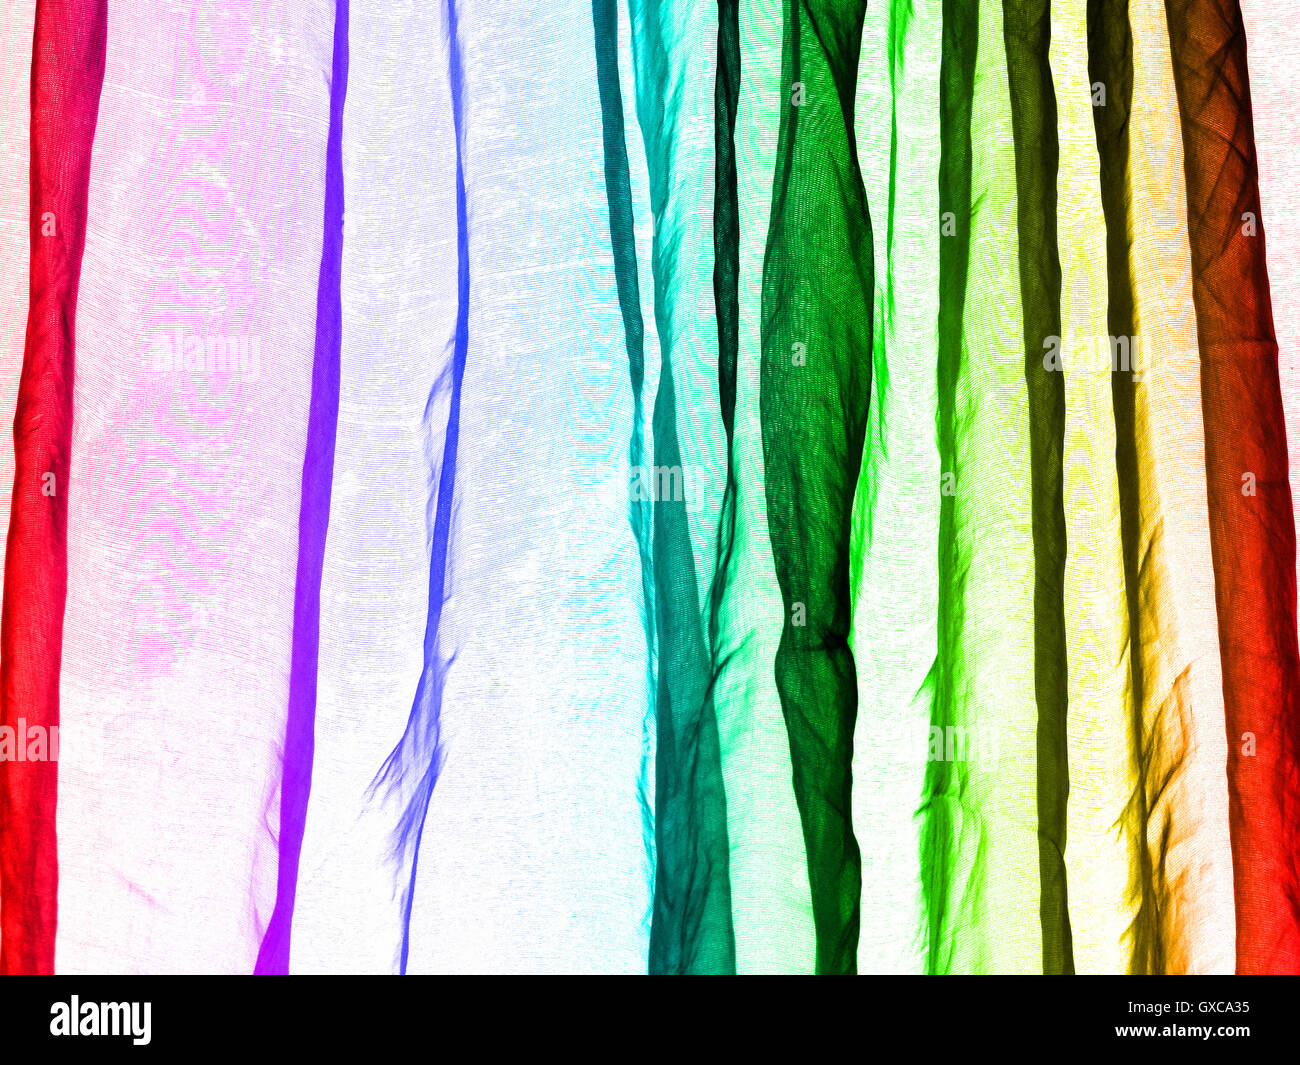 Voile curtain background rainbow colors - Stock Image